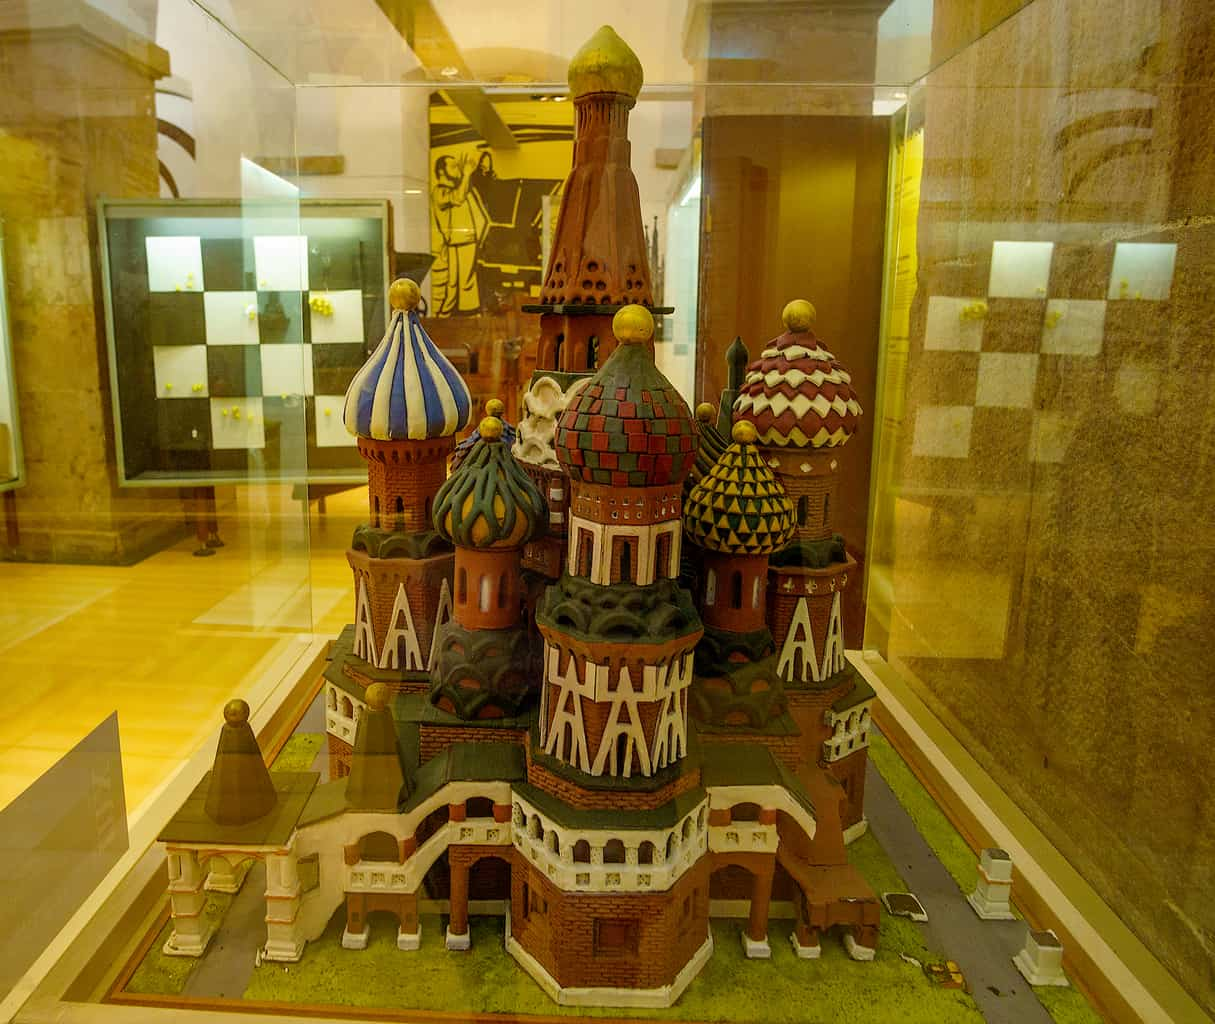 A chocolate sculpture of Moscow's famous, St. Basil's Cathedral is proudly displayed inside of Barcelona's chocolate museum.